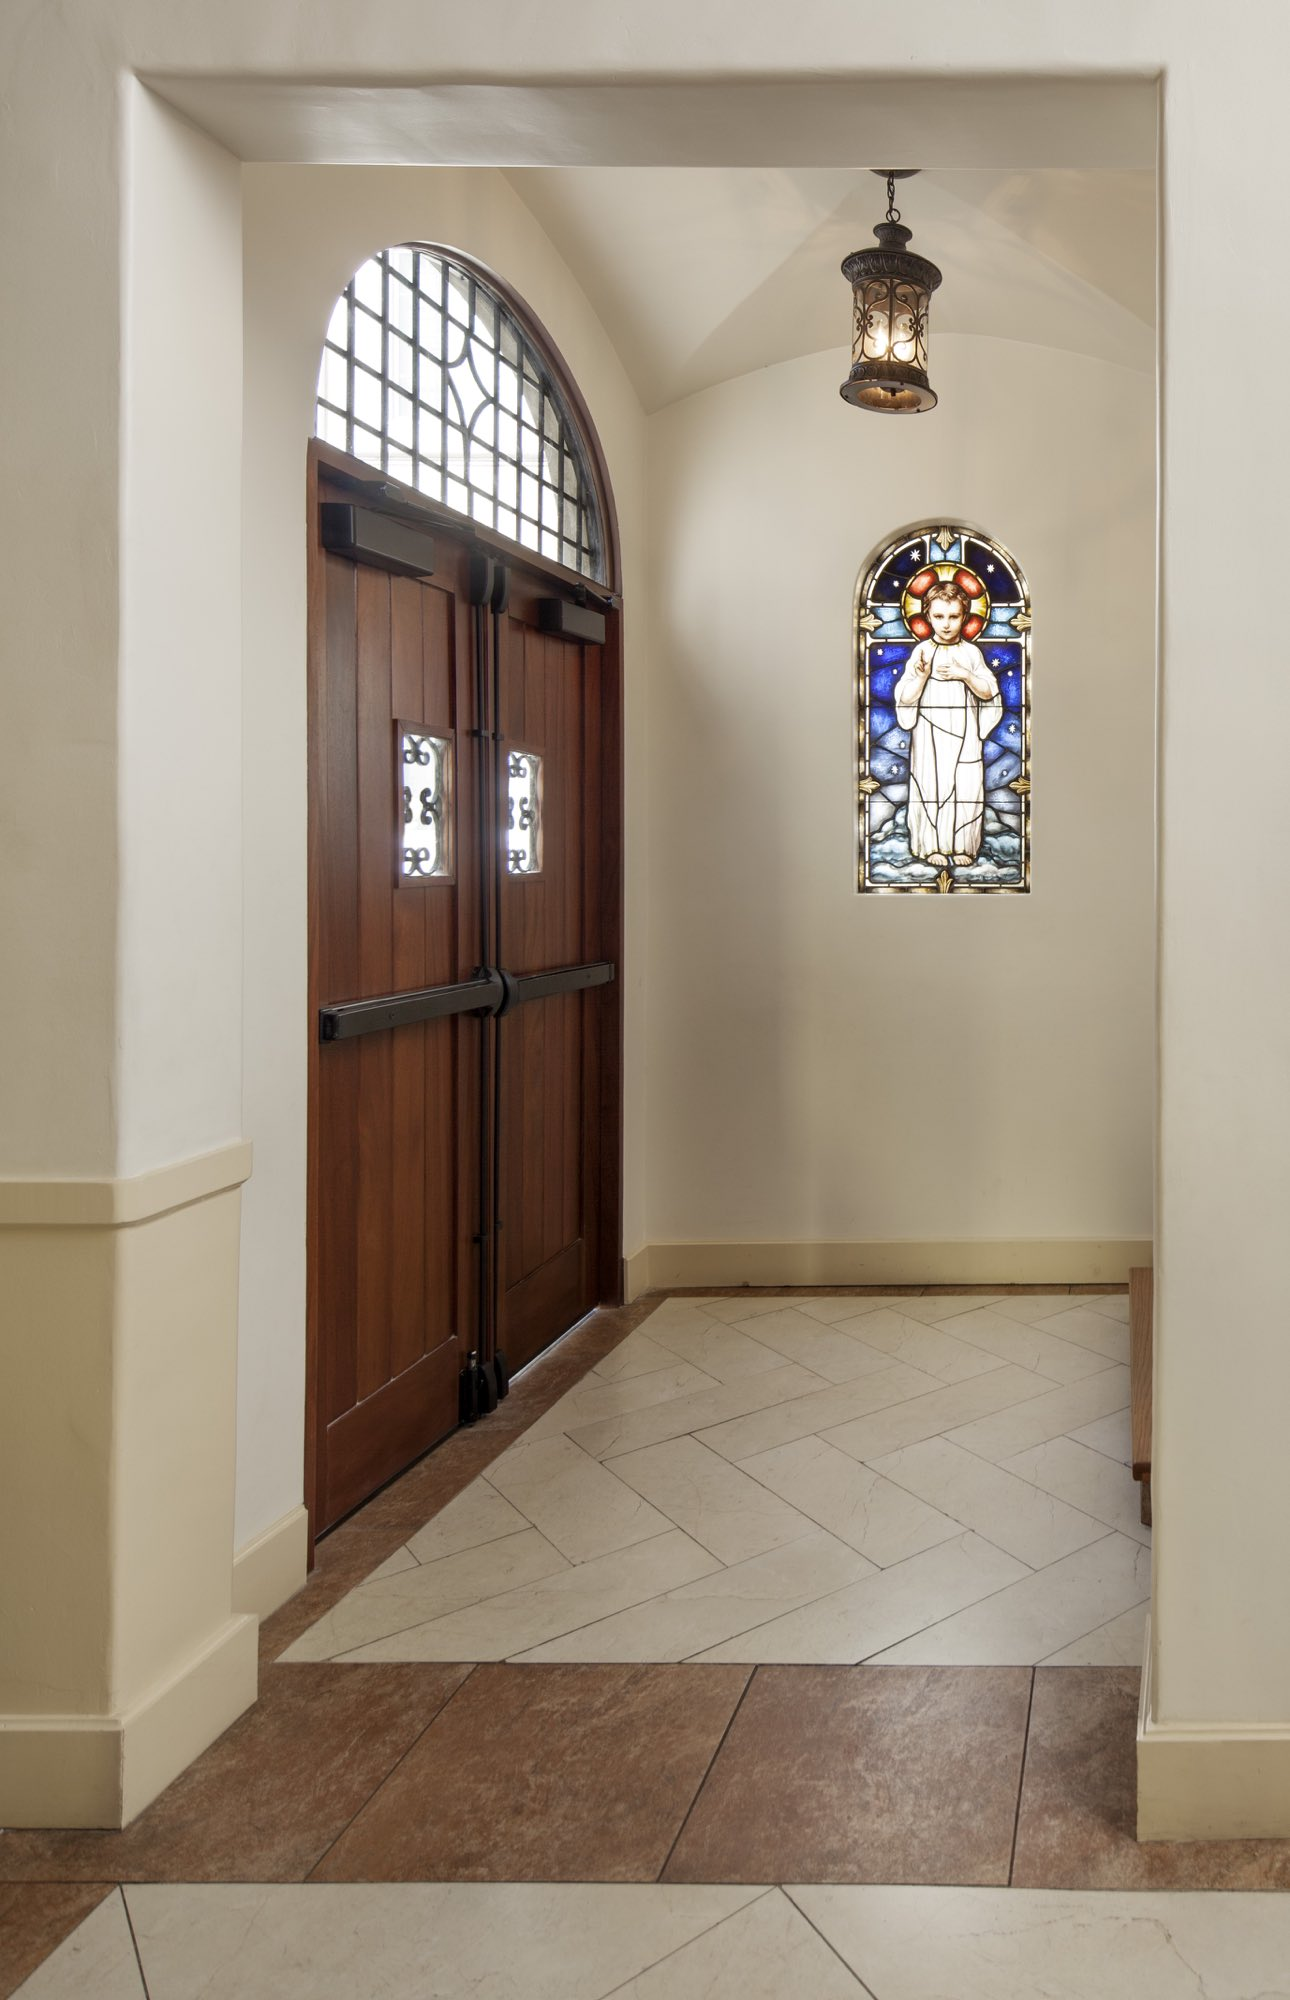 Tile floor and wooden door with wrought iron details and traditional stain glass in light filled vestibule by Harrison Design